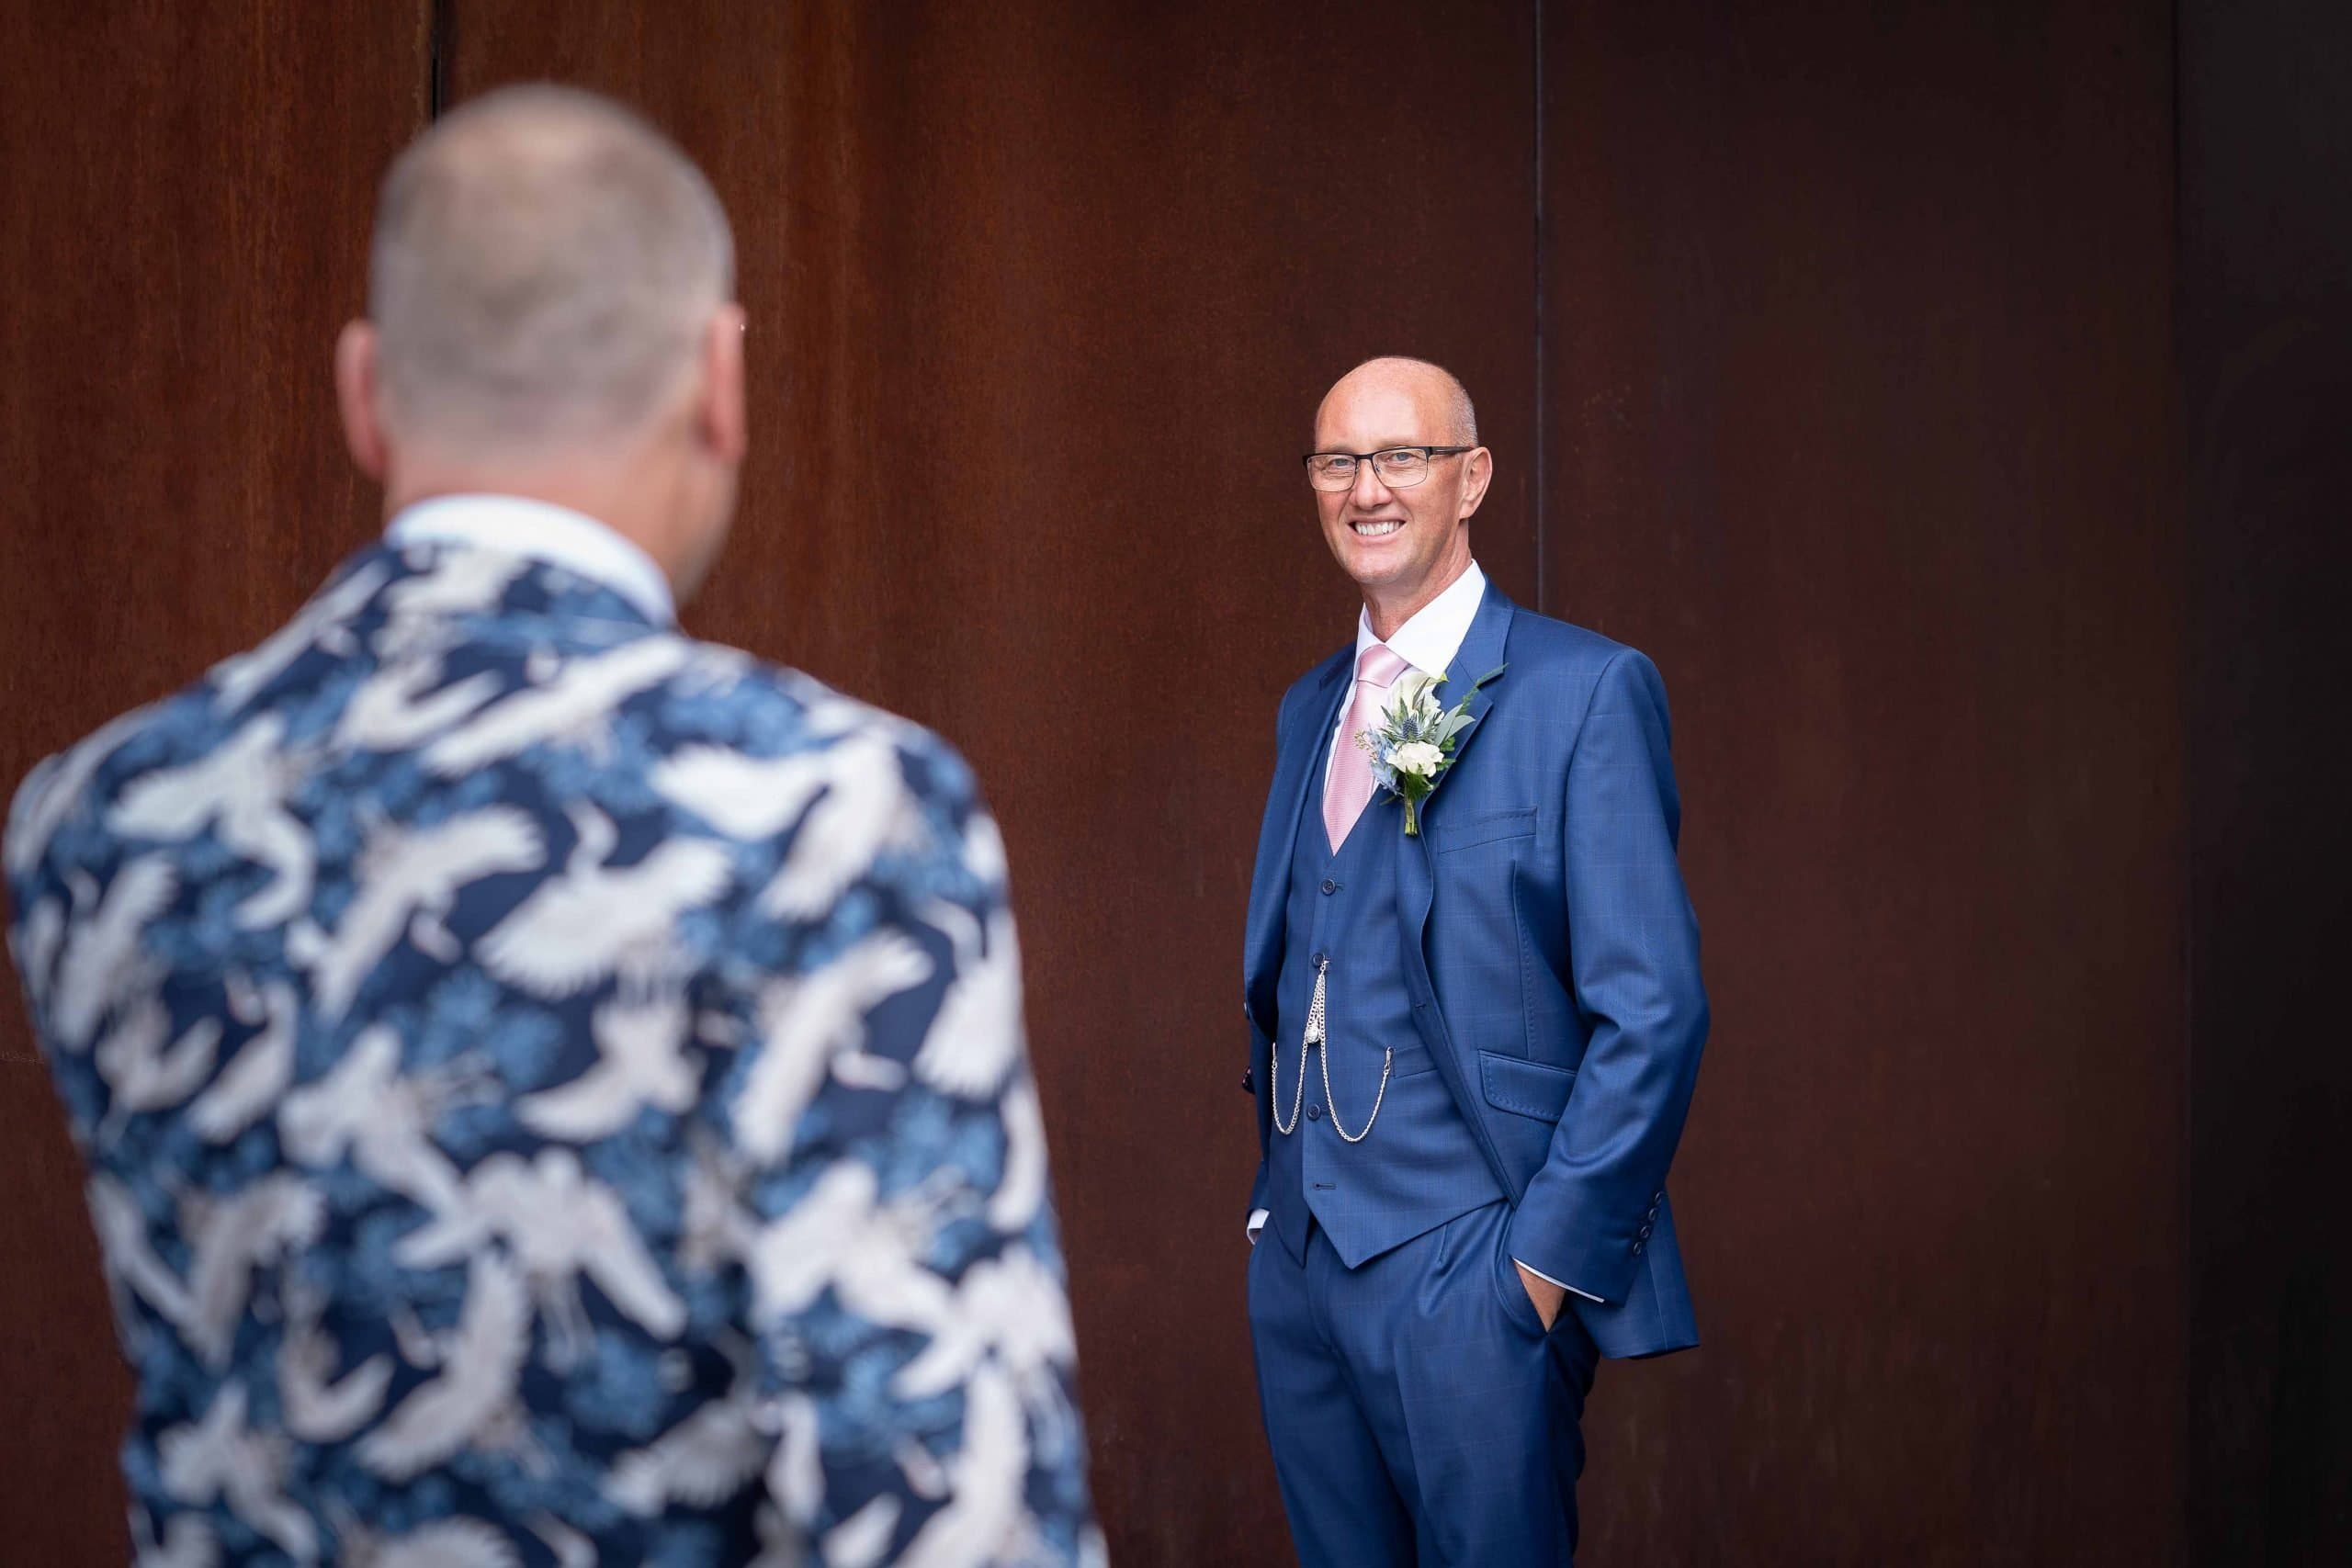 Newcastle wedding photography at the Vermont Hotel